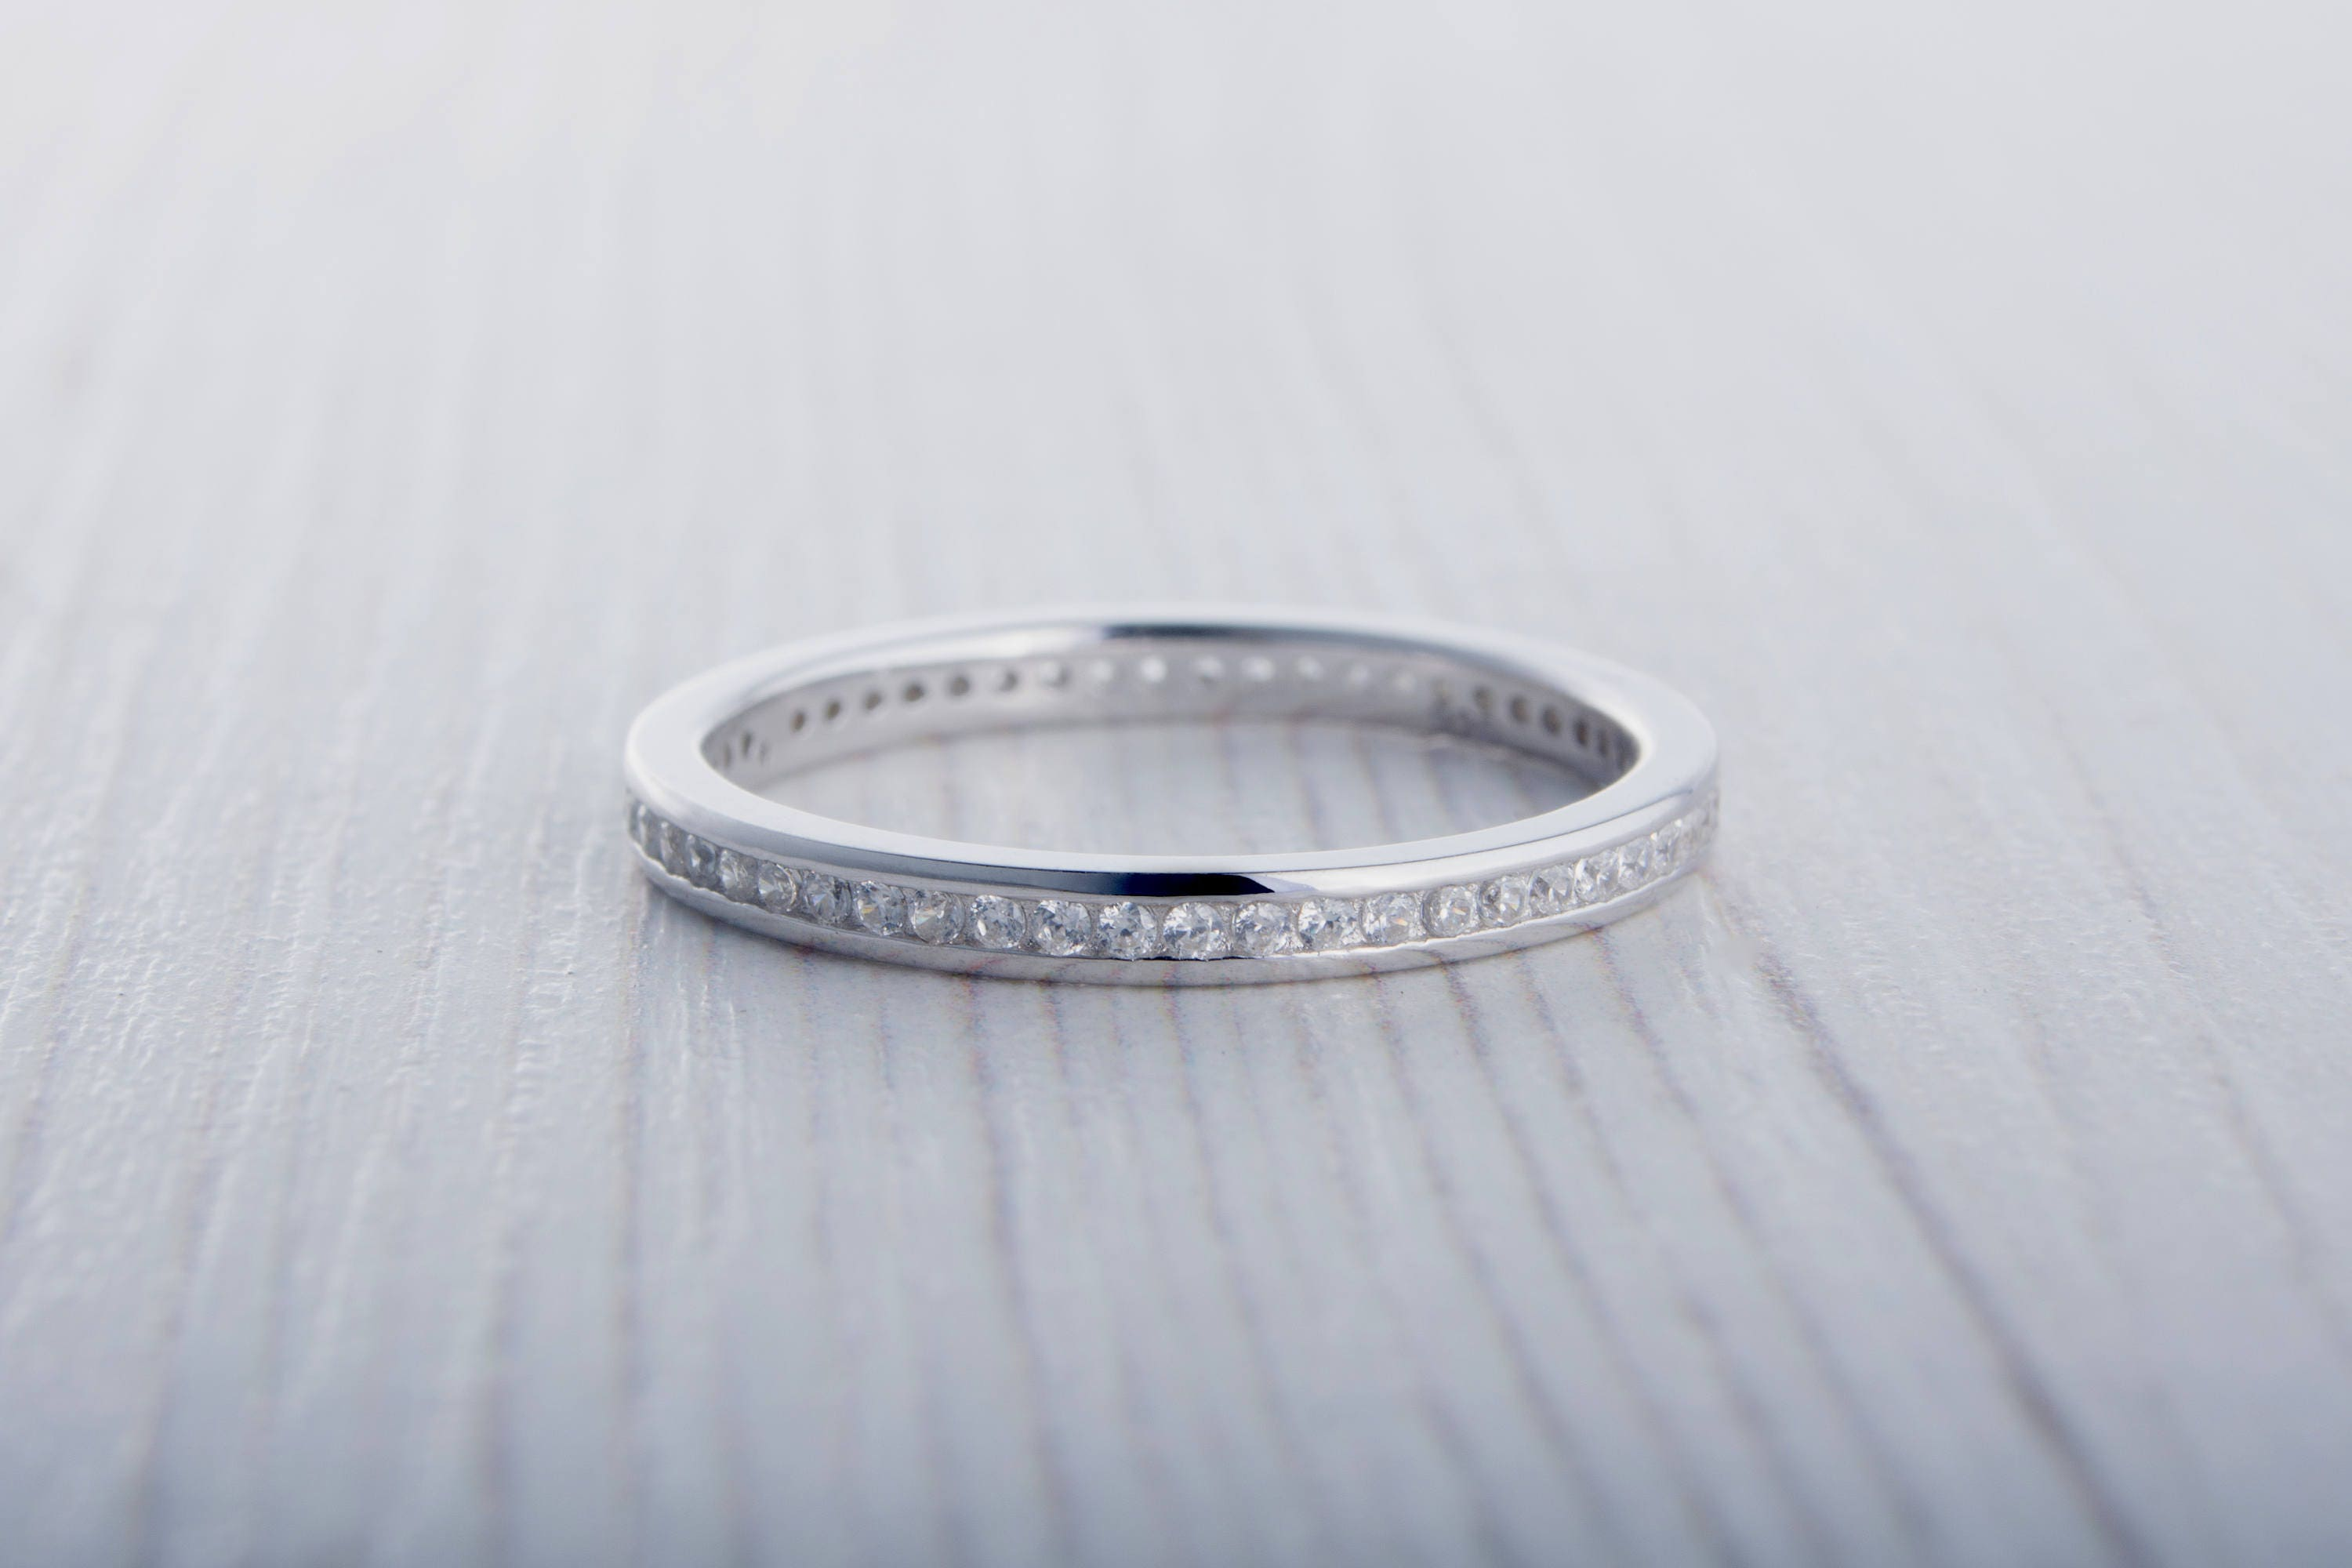 eternity bands wide a white round diamond jewelers rings bezel made an on carat gold in redford engagement band pin set at custom with ring